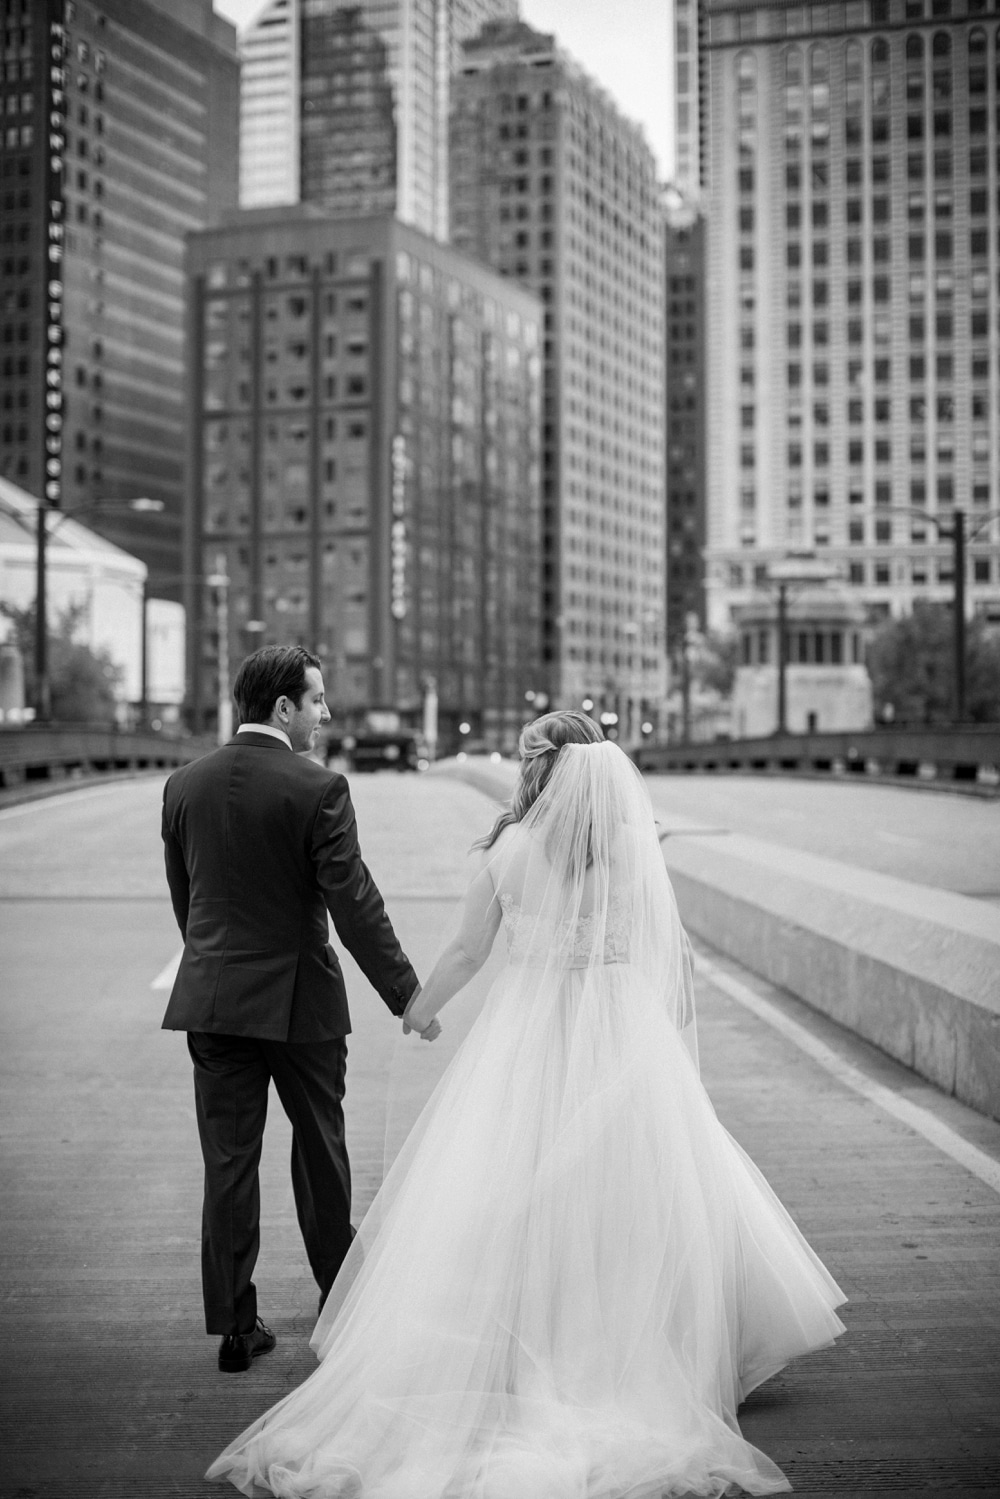 kristin-la-voie-photography-wyndham-grand-chicago-jewish-wedding-12